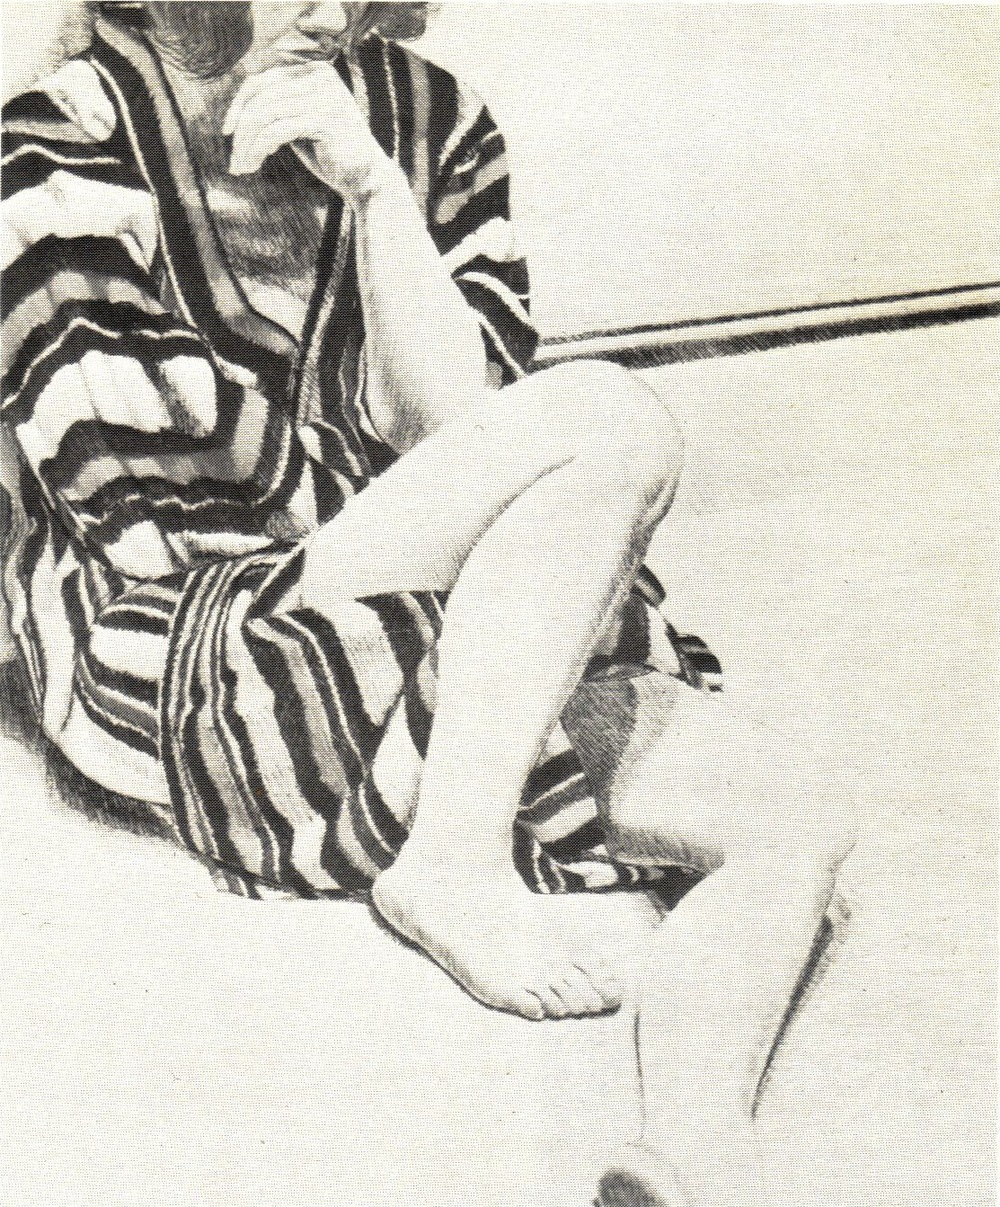 1972, Girl in Striped Robe, Lithograph, 68.6x55.9 cm.jpg